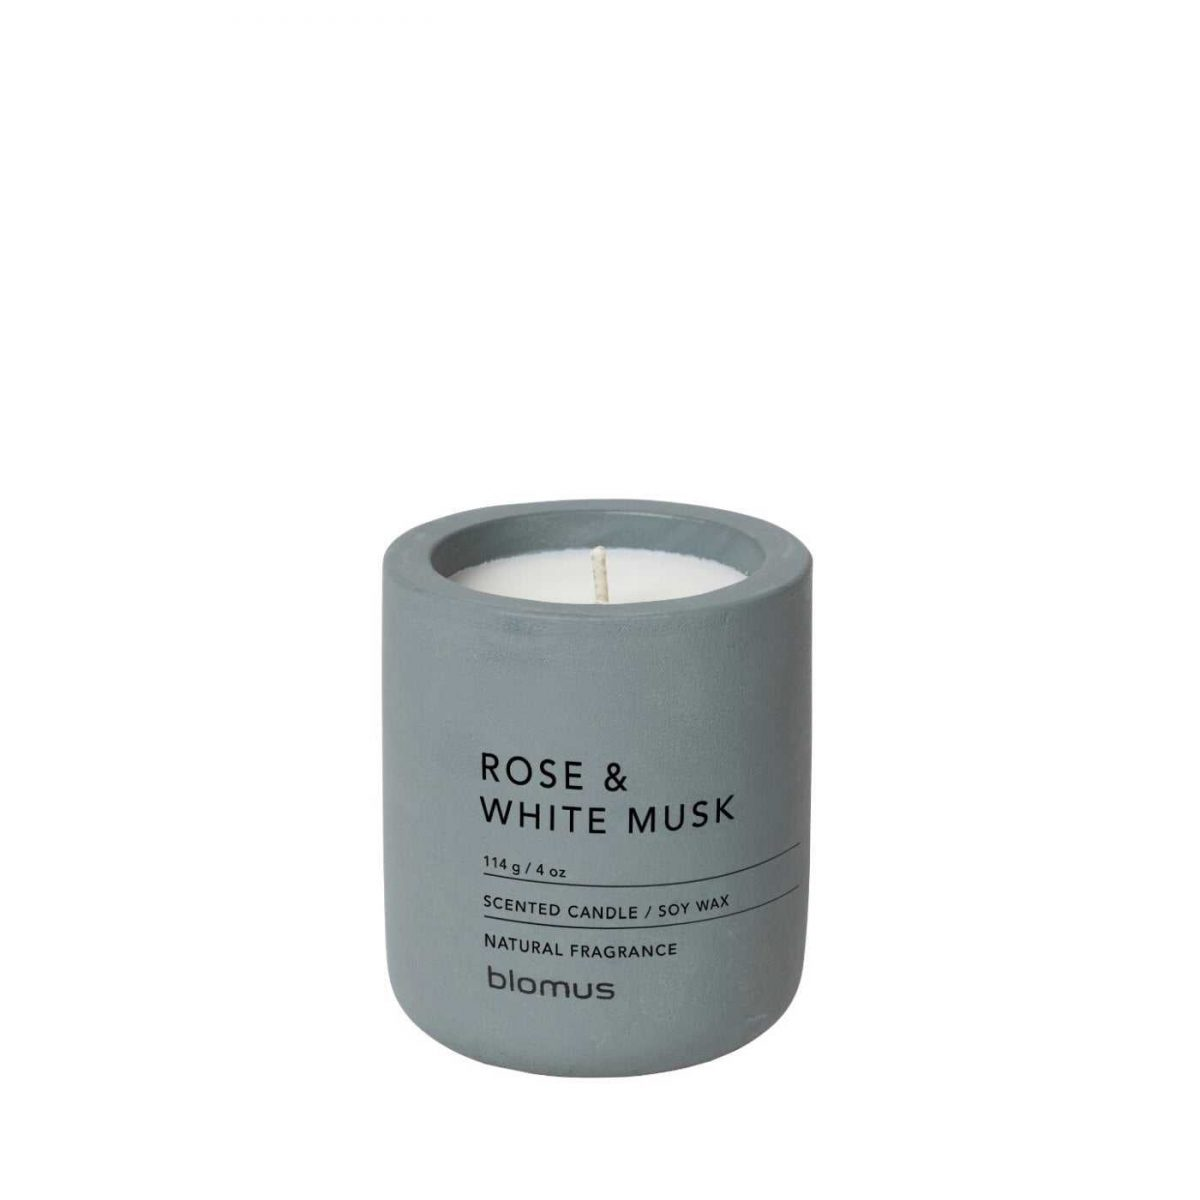 Rose and white musk 114